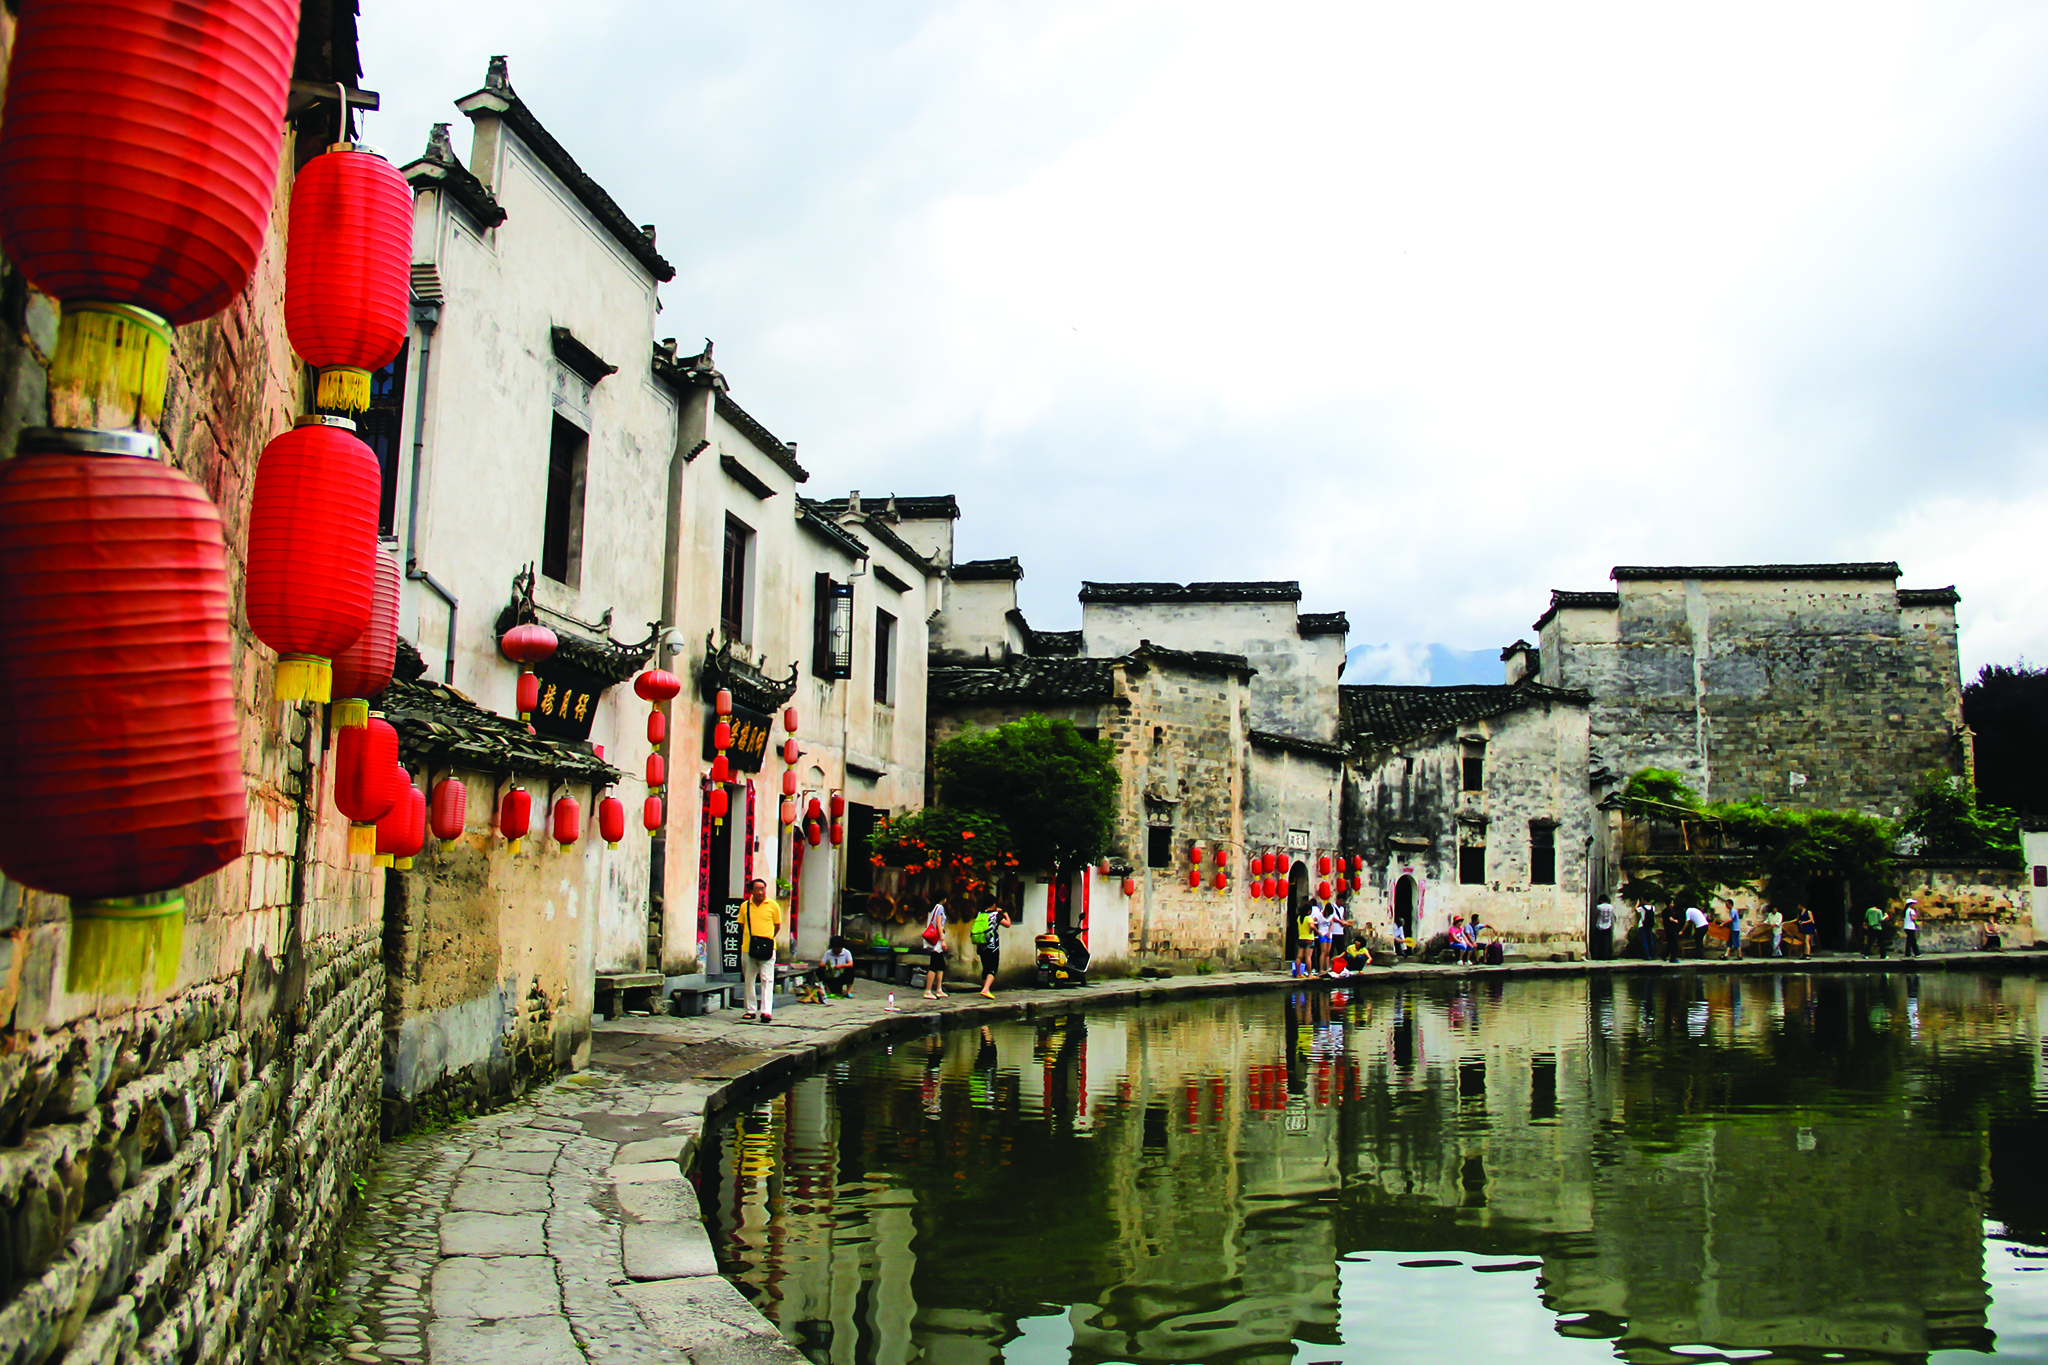 Canal in Hongcun, China with hanging red lanterns from buildings lining the canal.